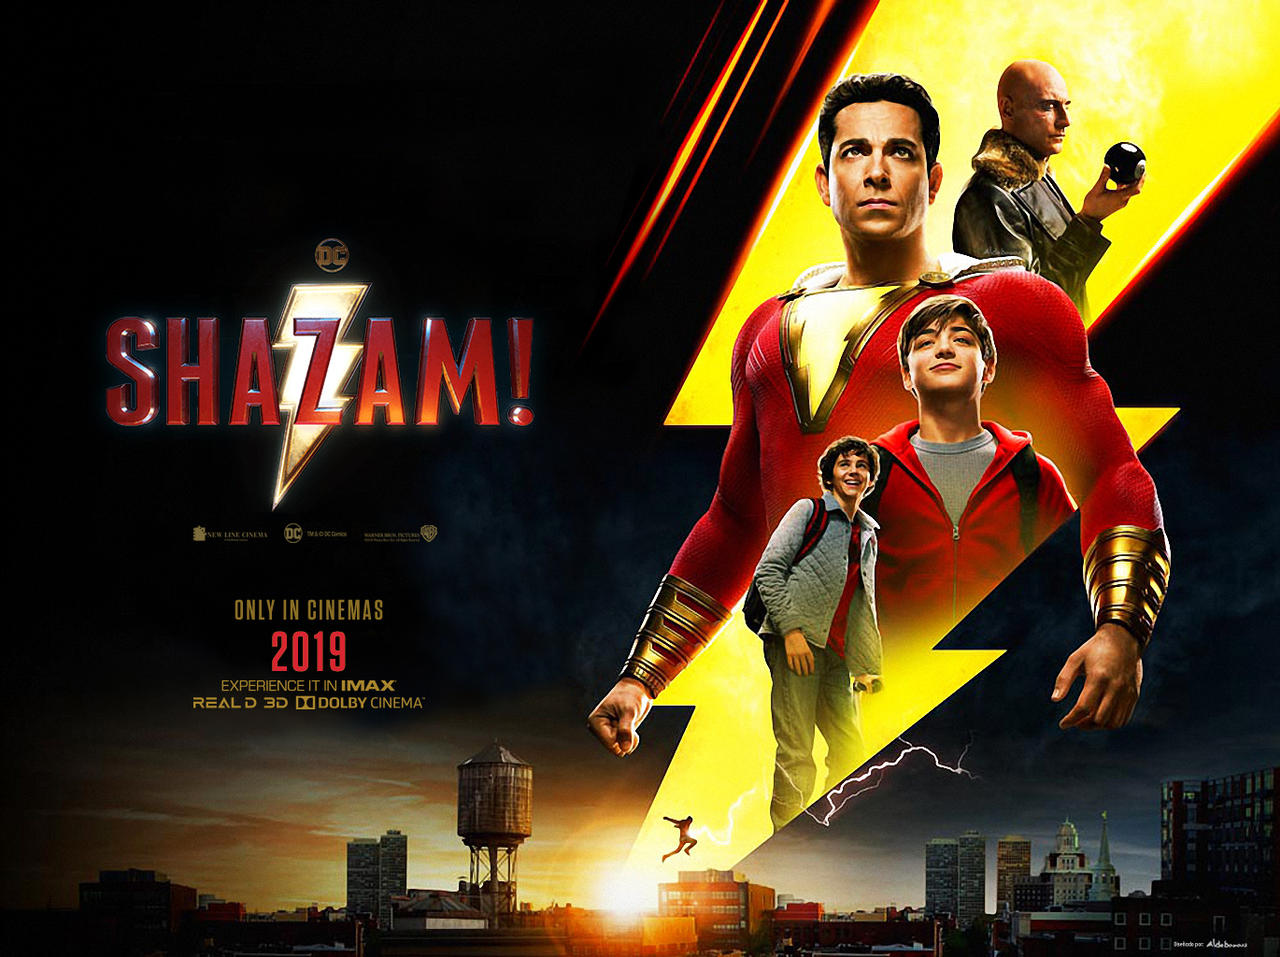 Shazam 2019 Full Movie In Hindi Dubbed bluray